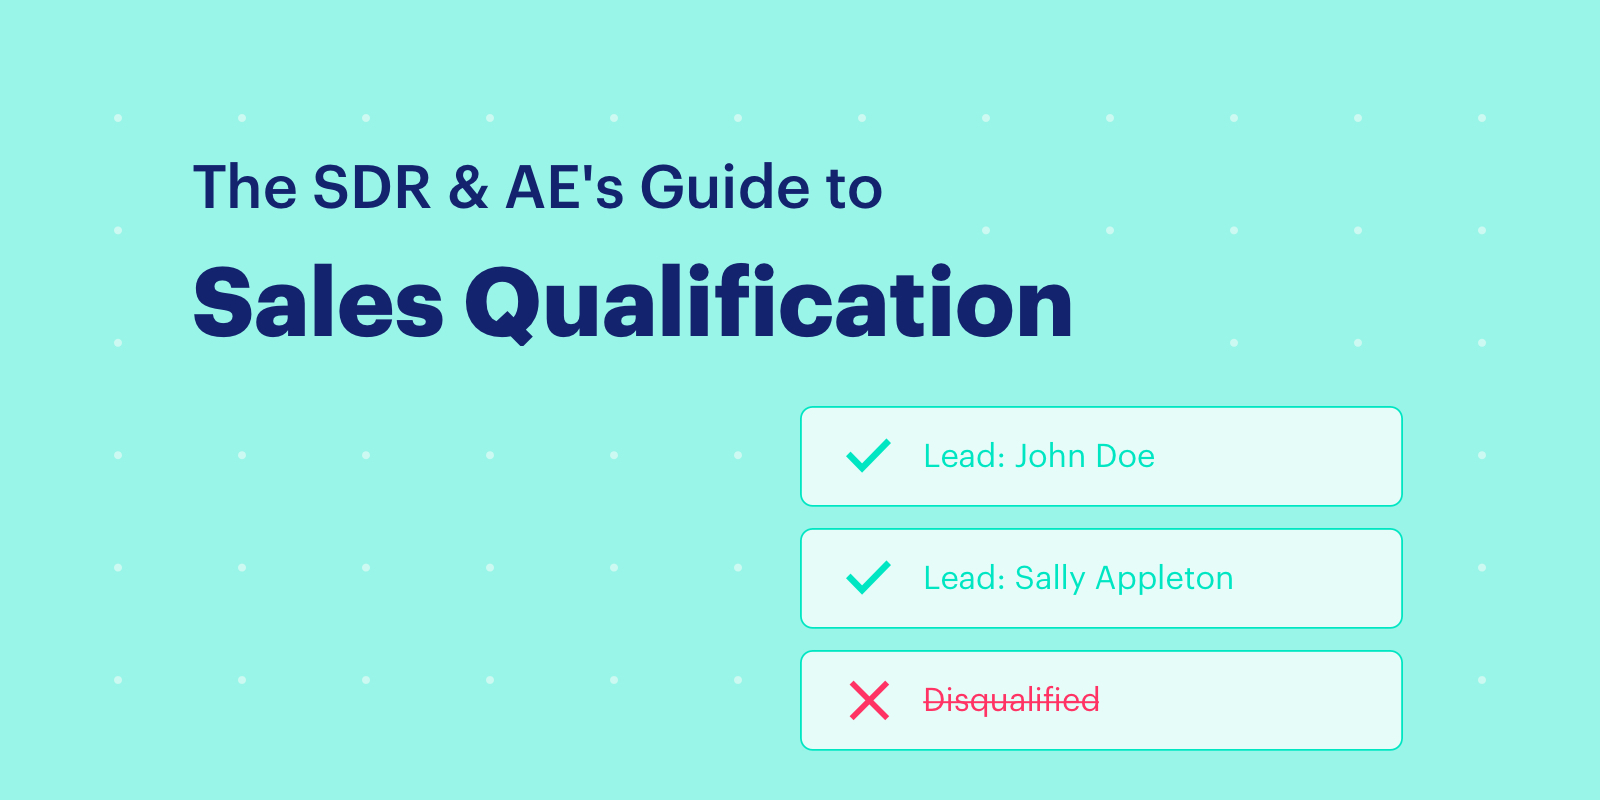 The SDR + AE's Guide to Sales Qualification